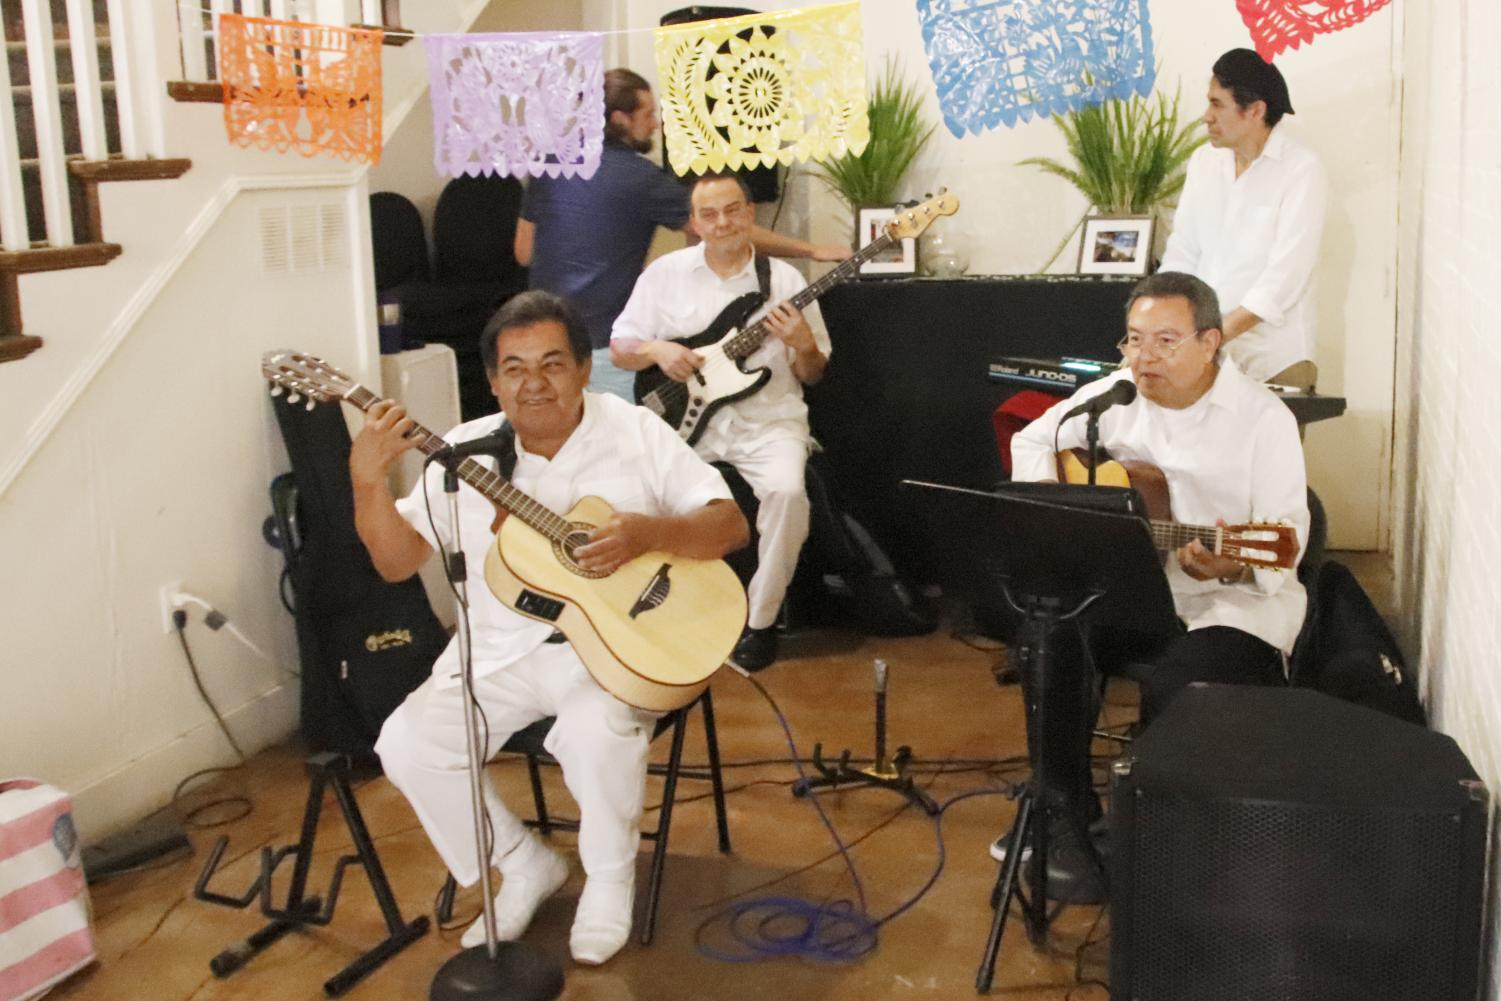 The Hammond Regional Arts Center's annual membership gala featured music from the Julio and Cesar Band. The Cuban-styled night also included a display of cigar box guitars.